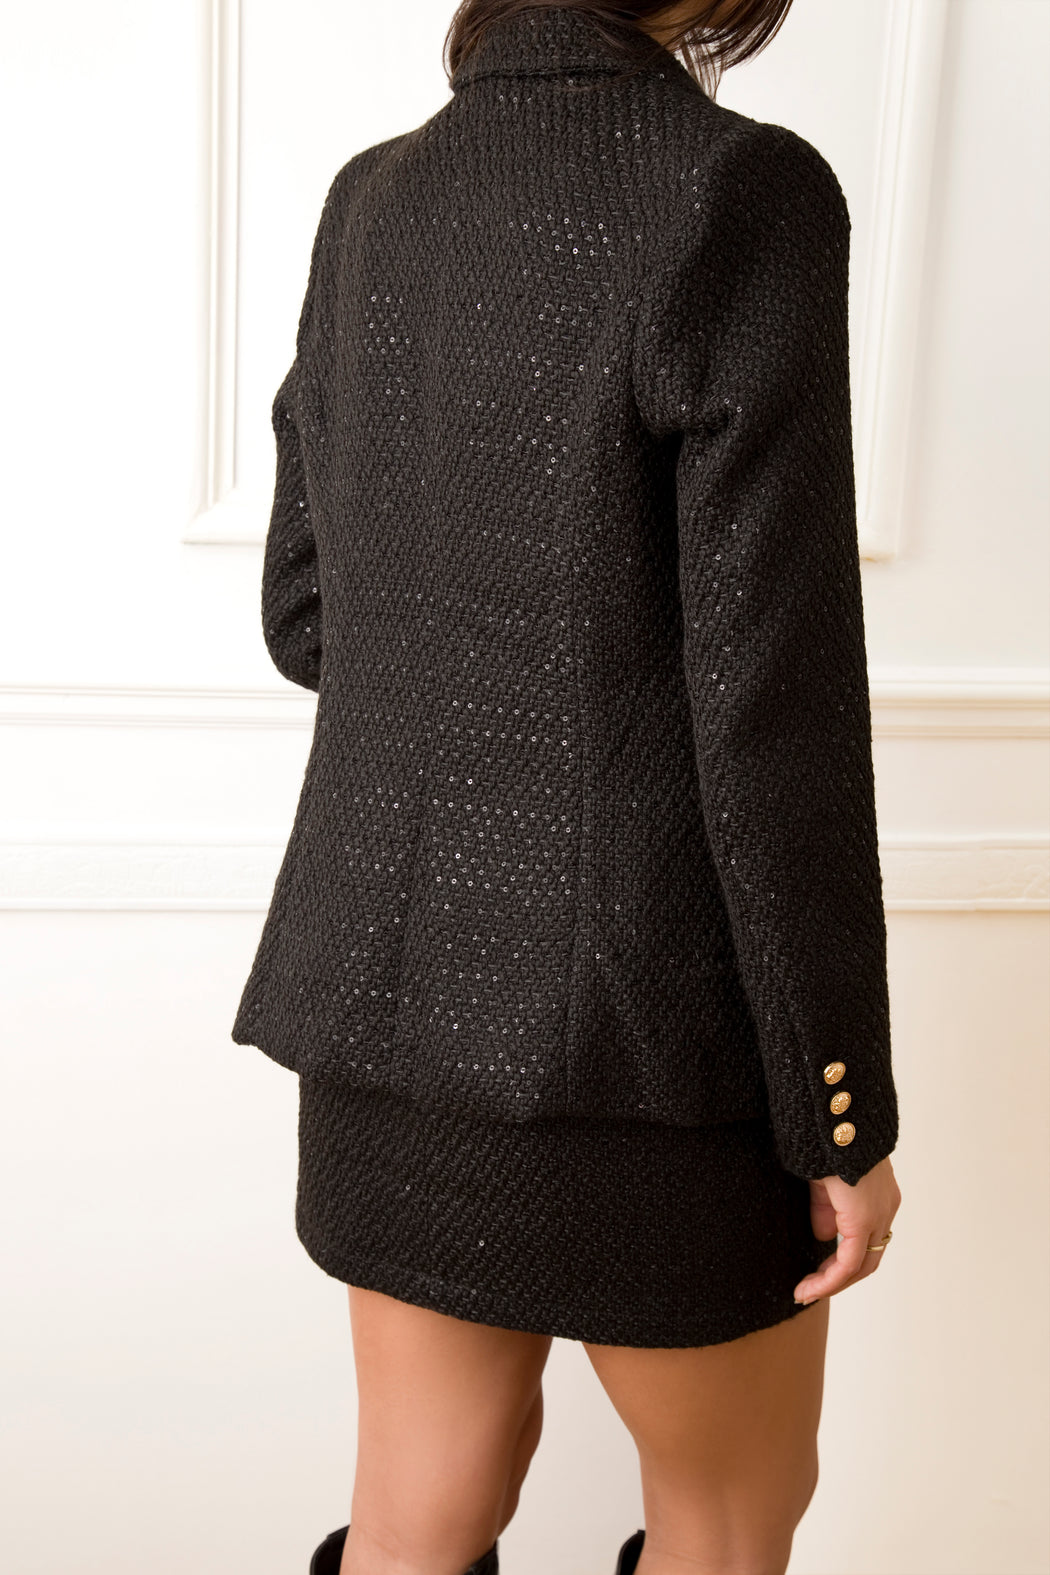 Carry Tweed Black Sequin Jacket - Lavand Stories